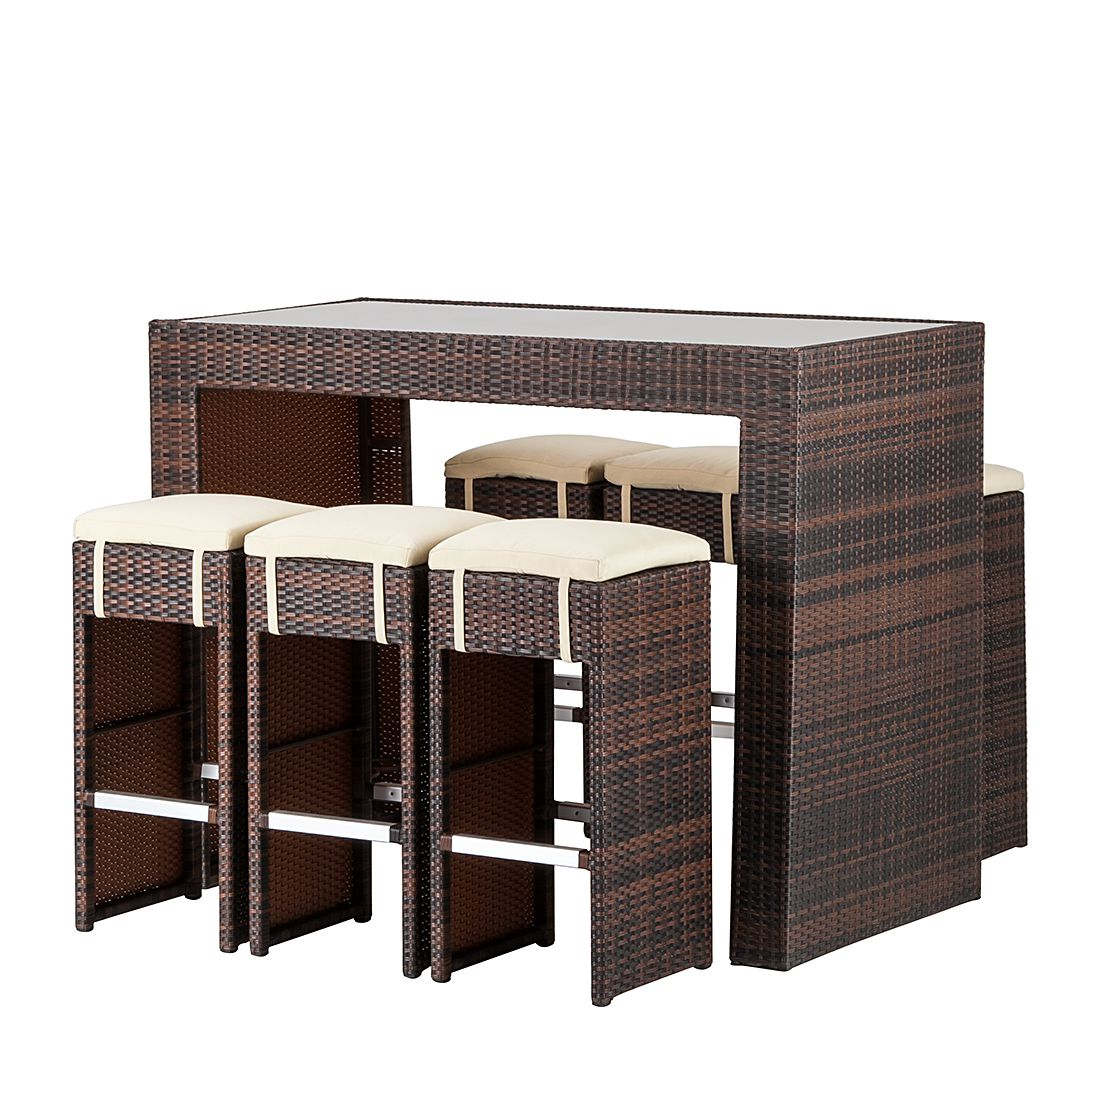 gartenbar set paradise lounge 7 teilig polyrattan braun meliert fredriks online kaufen. Black Bedroom Furniture Sets. Home Design Ideas